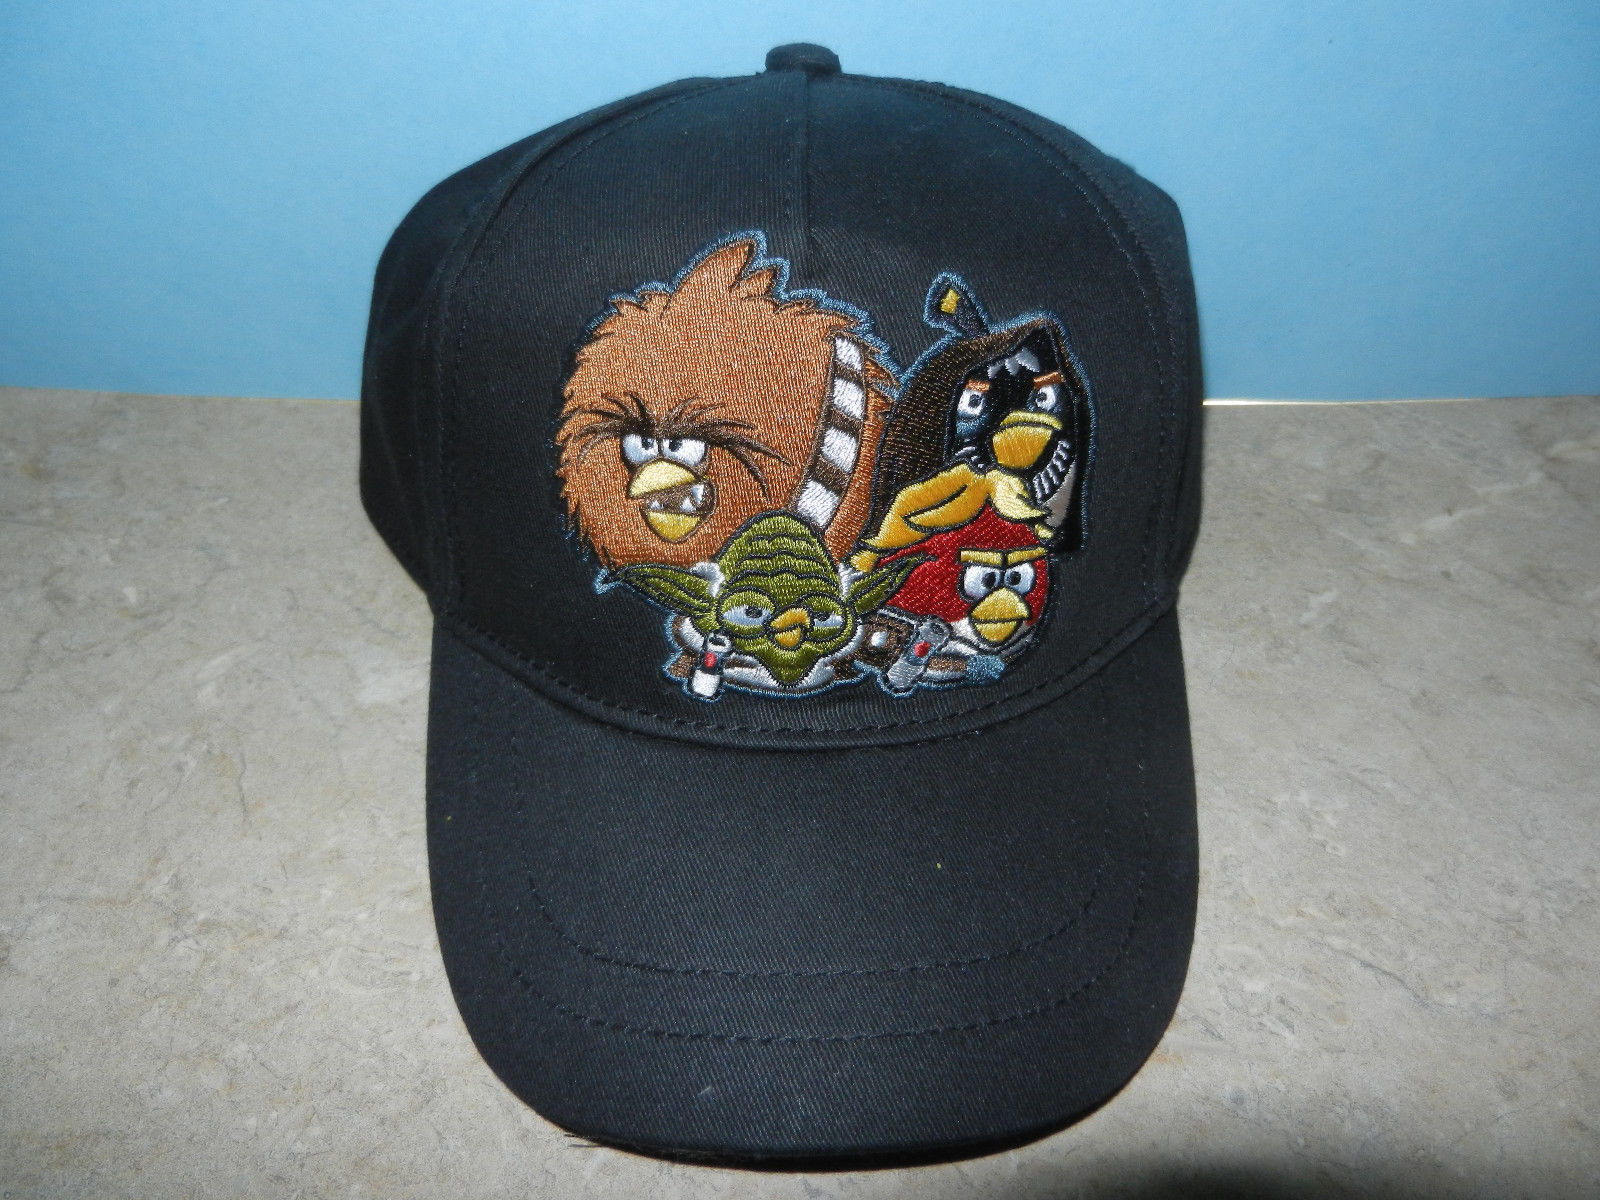 Primary image for Angry Birds Star Wars Baseball Hat Cap Black One Size Adjustable Velcro NEW NWT